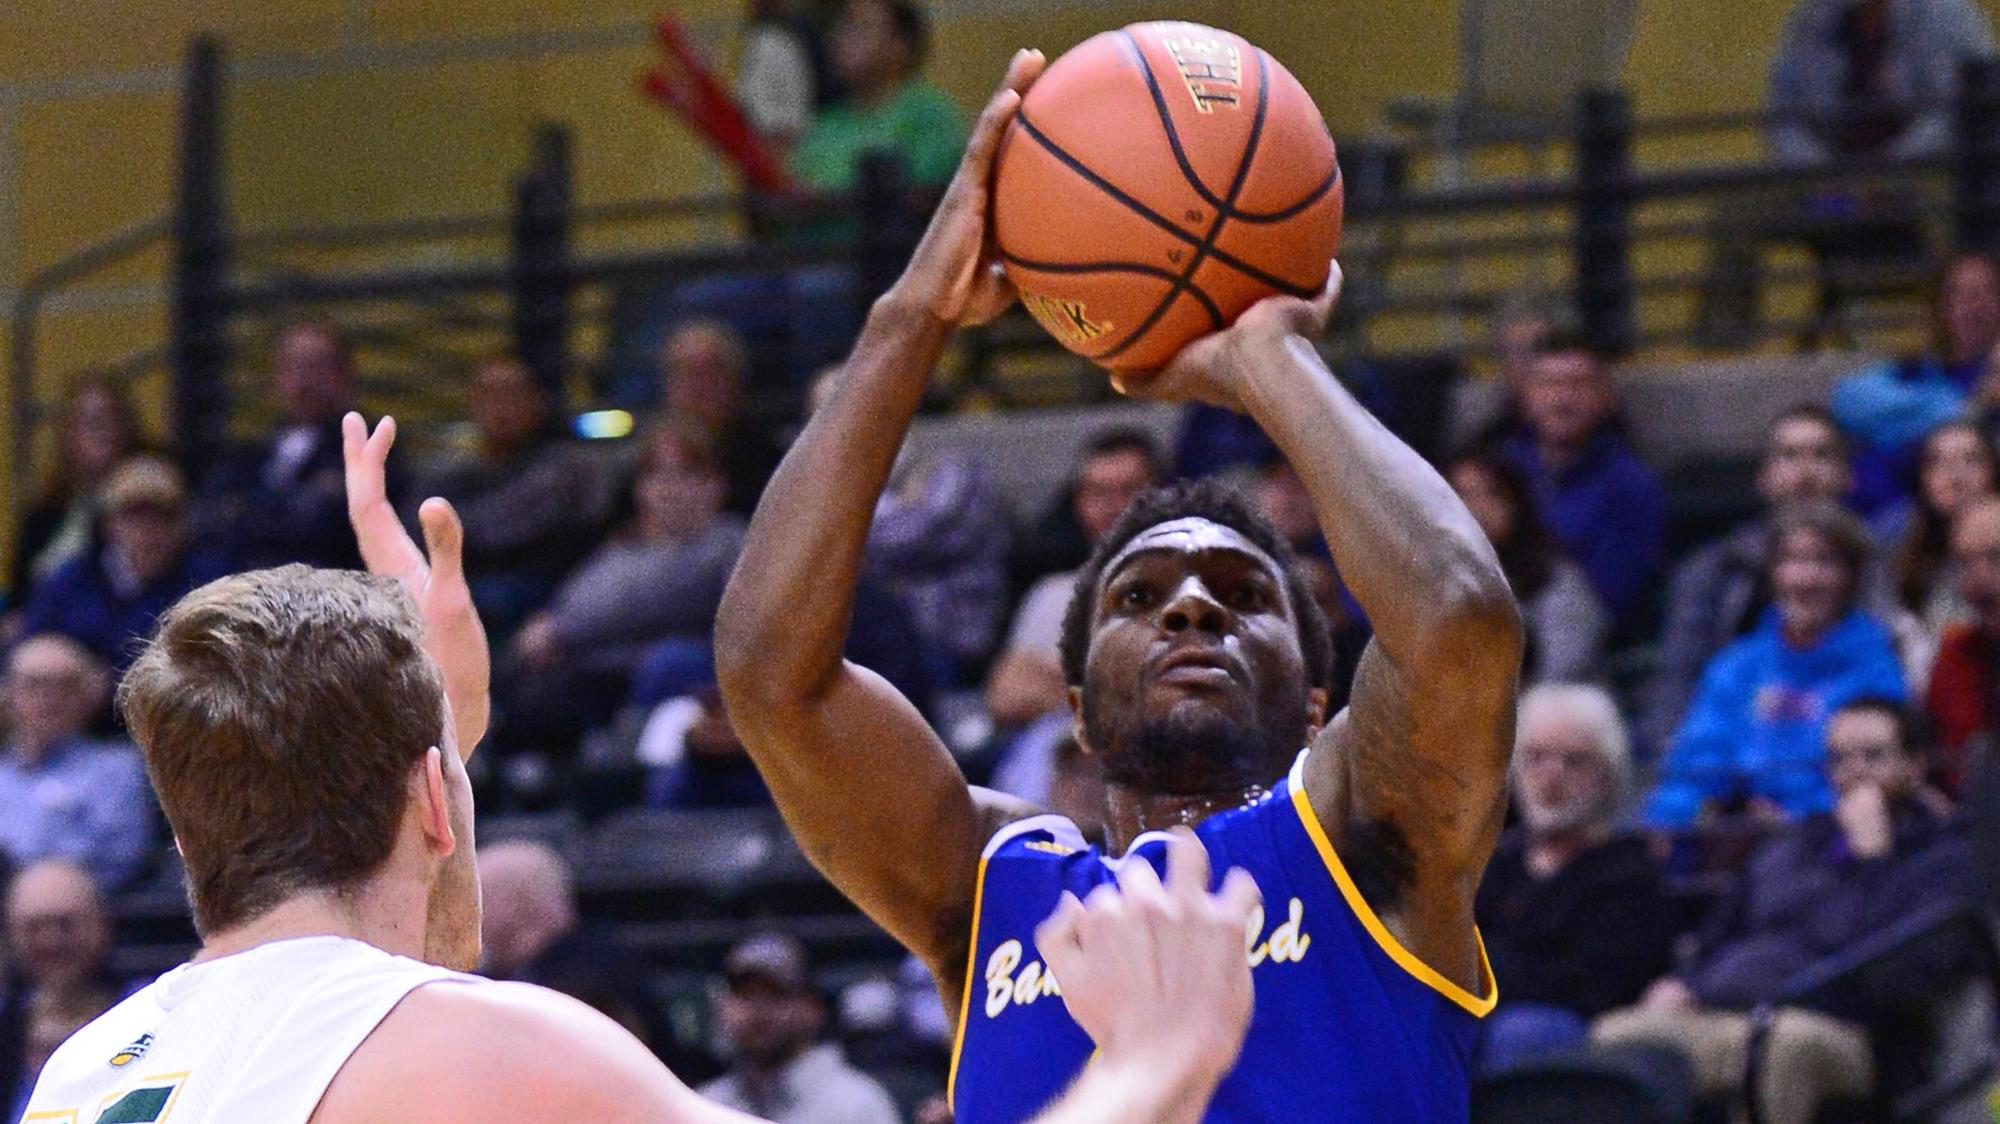 'Runners Looking For Third Victory In A Row - California State University, Bakersfield